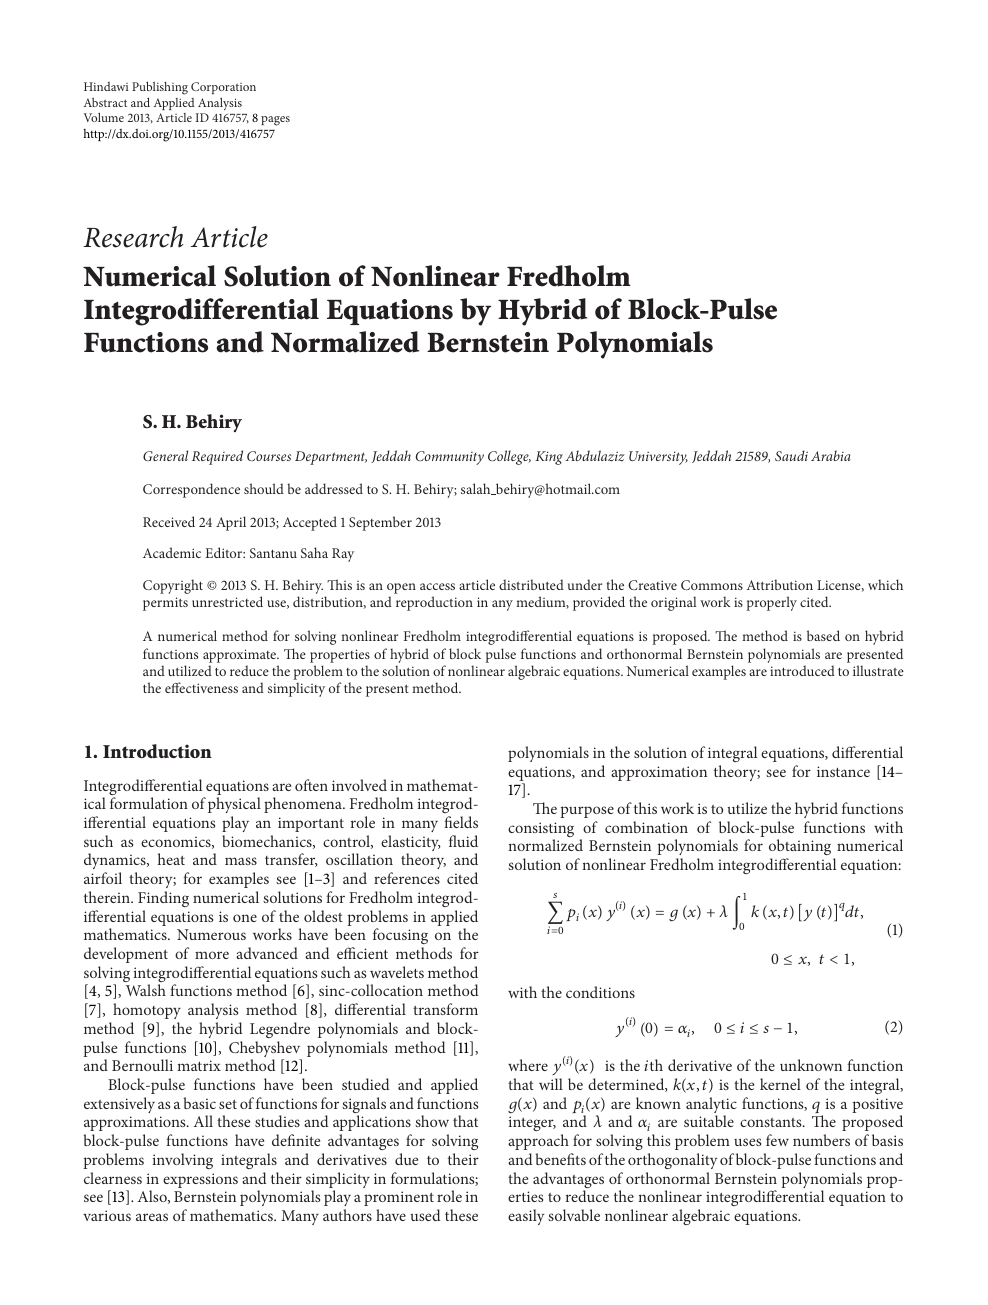 Numerical Solution of Nonlinear Fredholm Integrodifferential